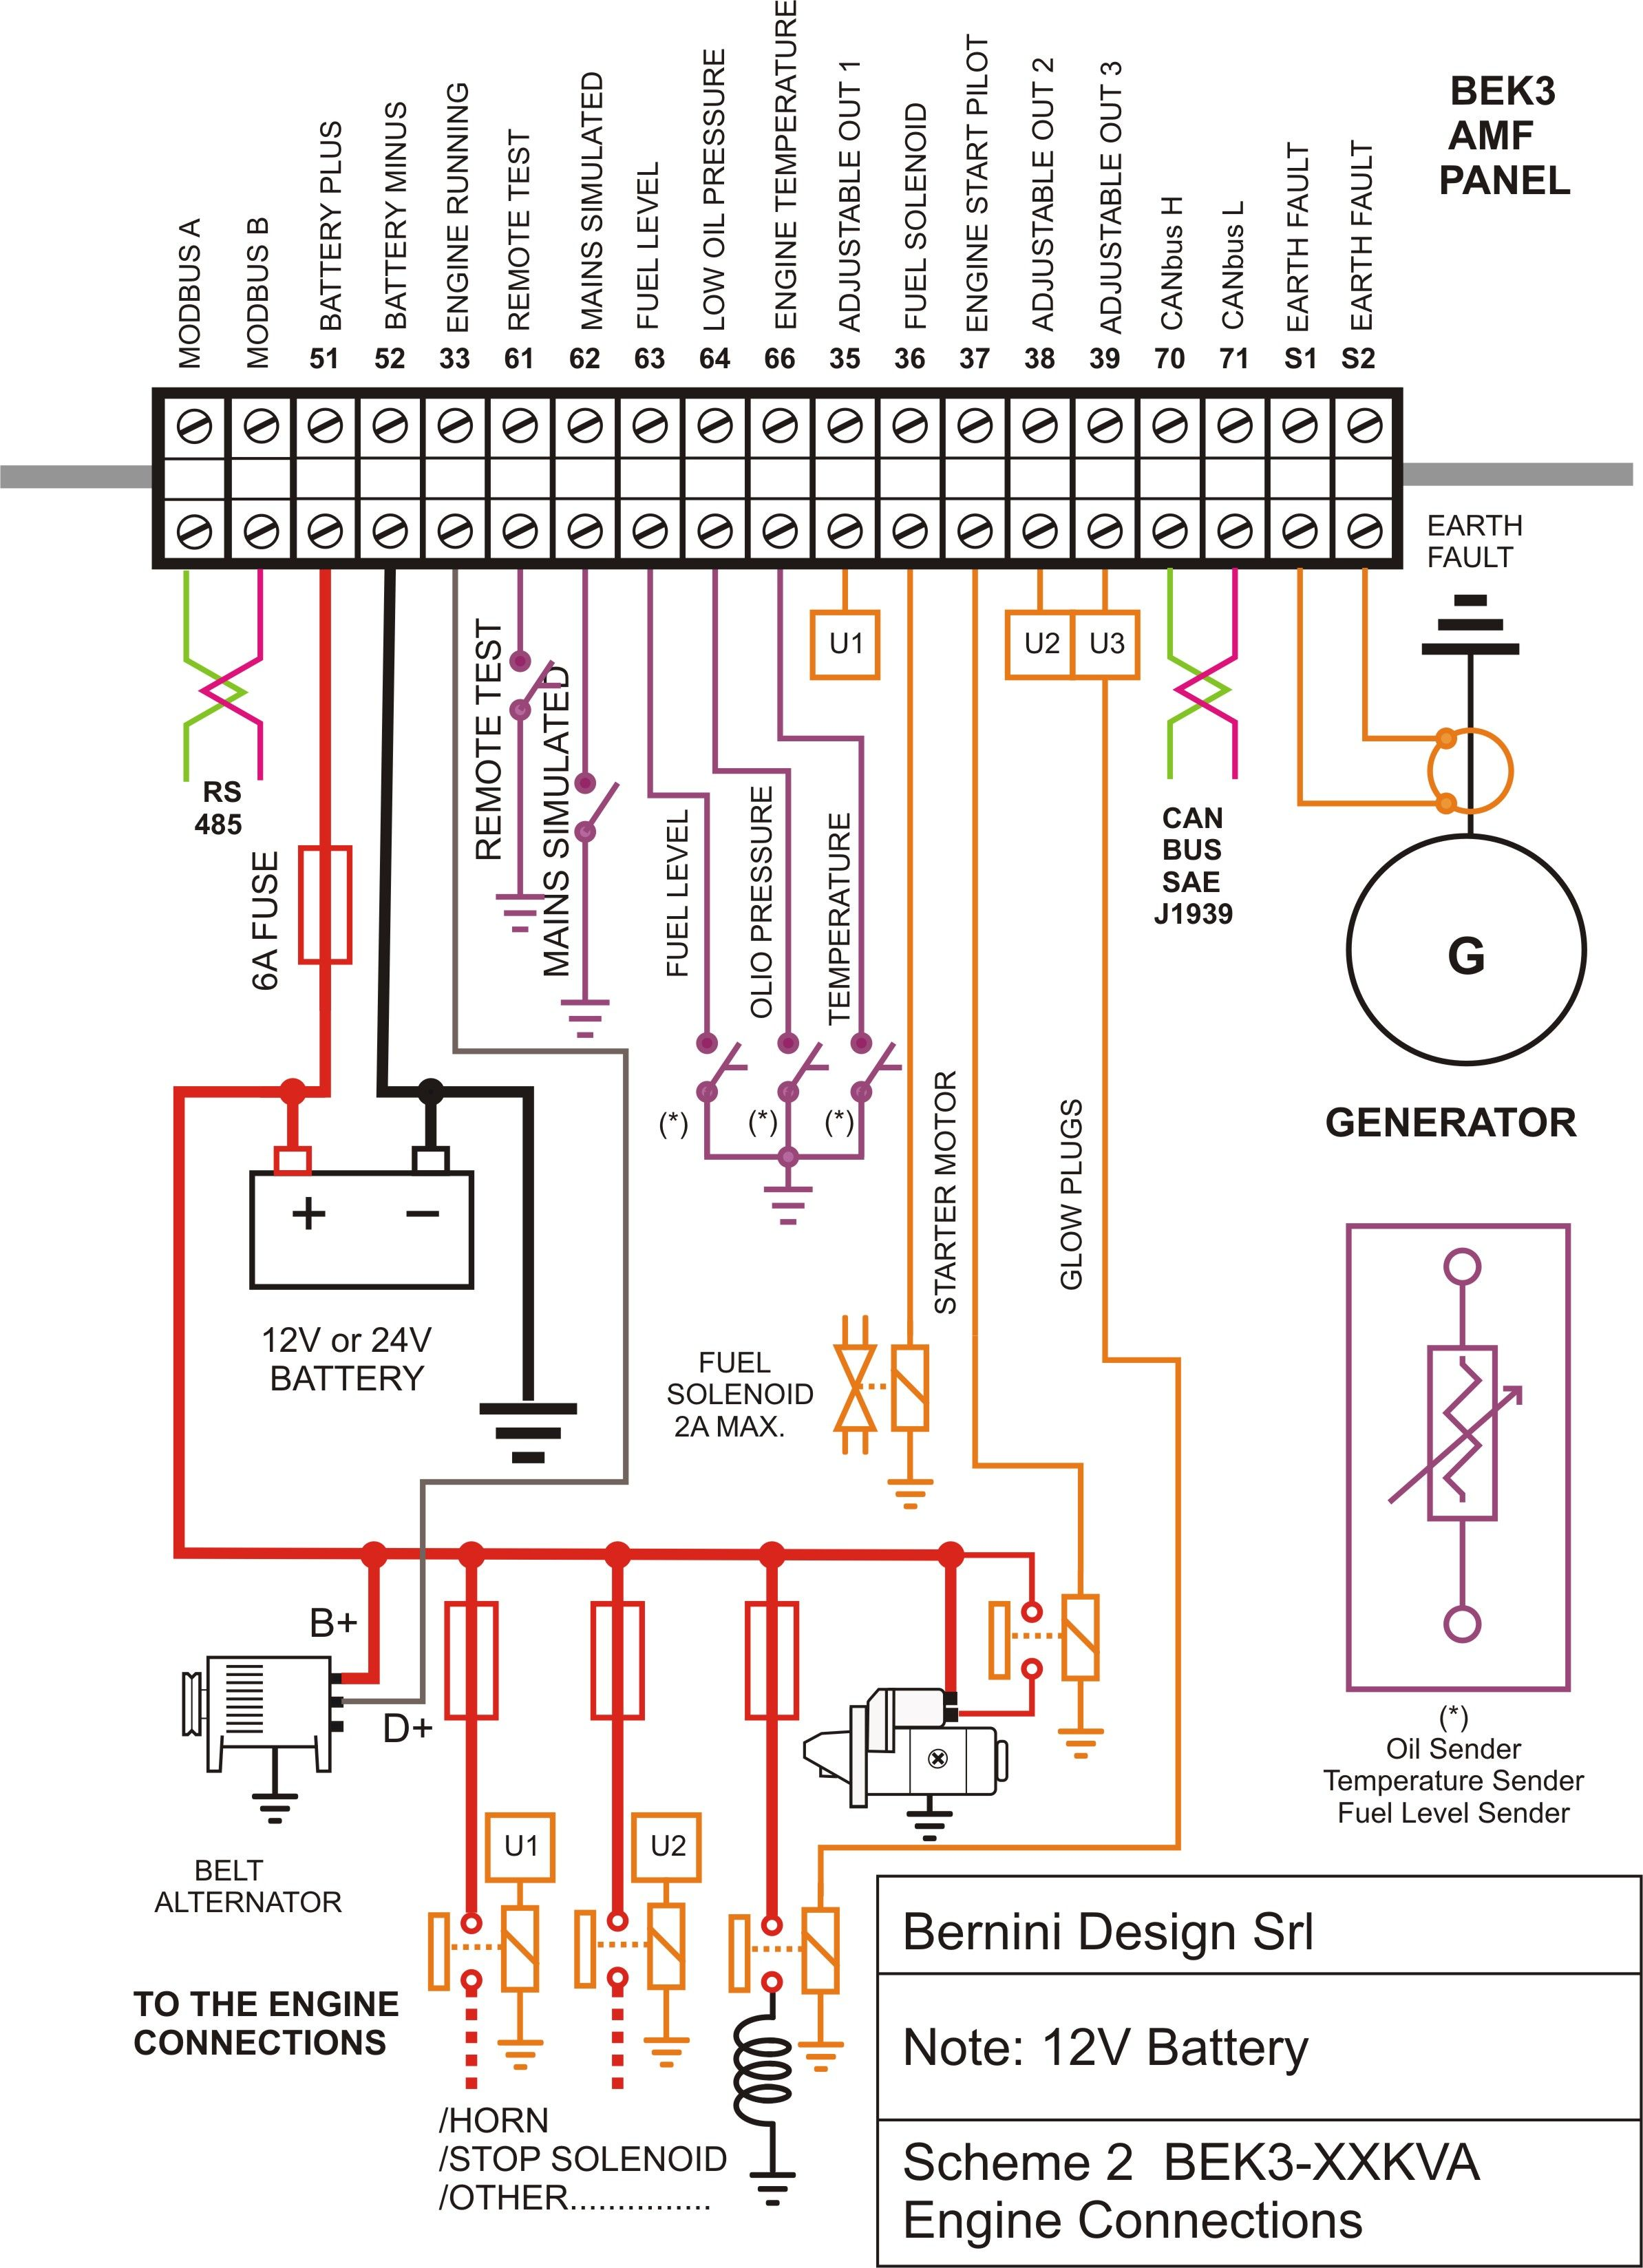 medium resolution of diesel generator control panel wiring diagram engine connections